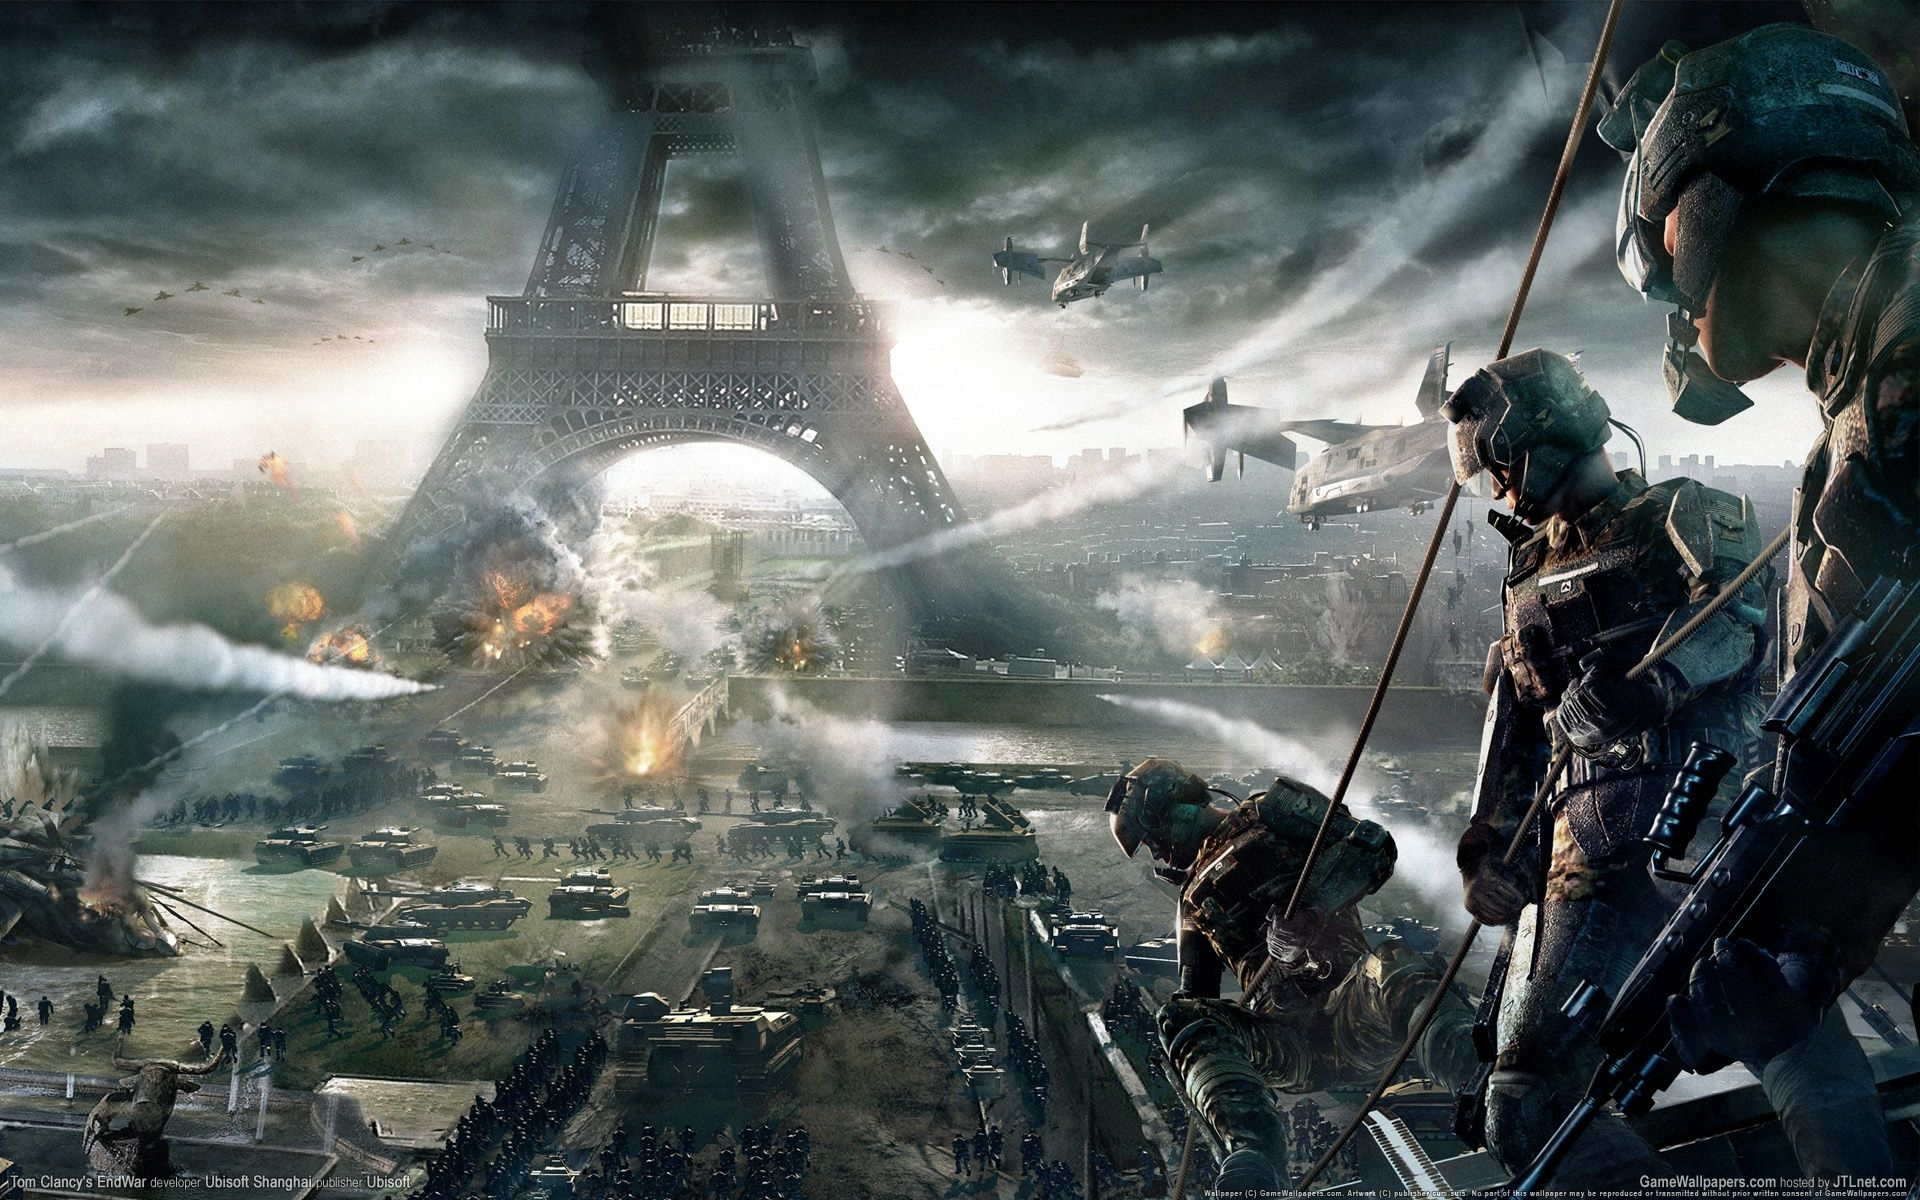 Tom clancy s end war soldiers paris tanks eiffel tower the 1920x1200